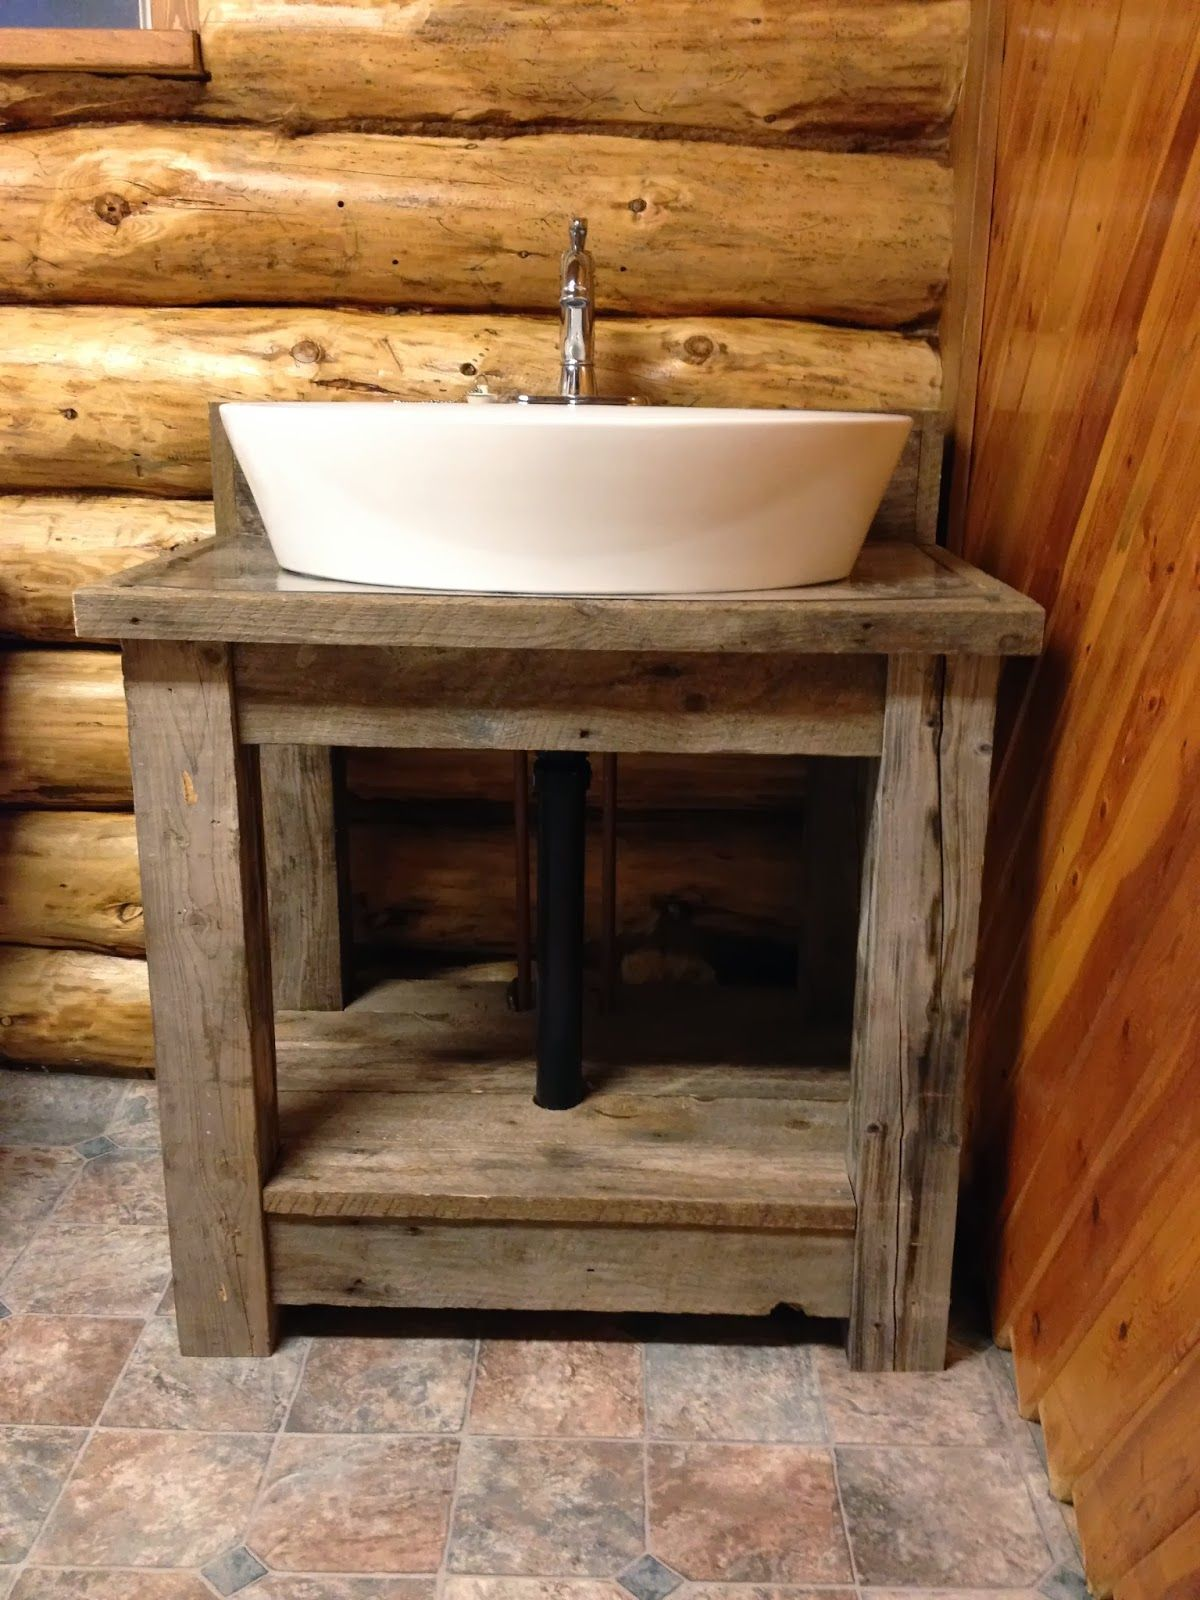 Rustic Reclaimed Wood Open Shelf Vanity With White